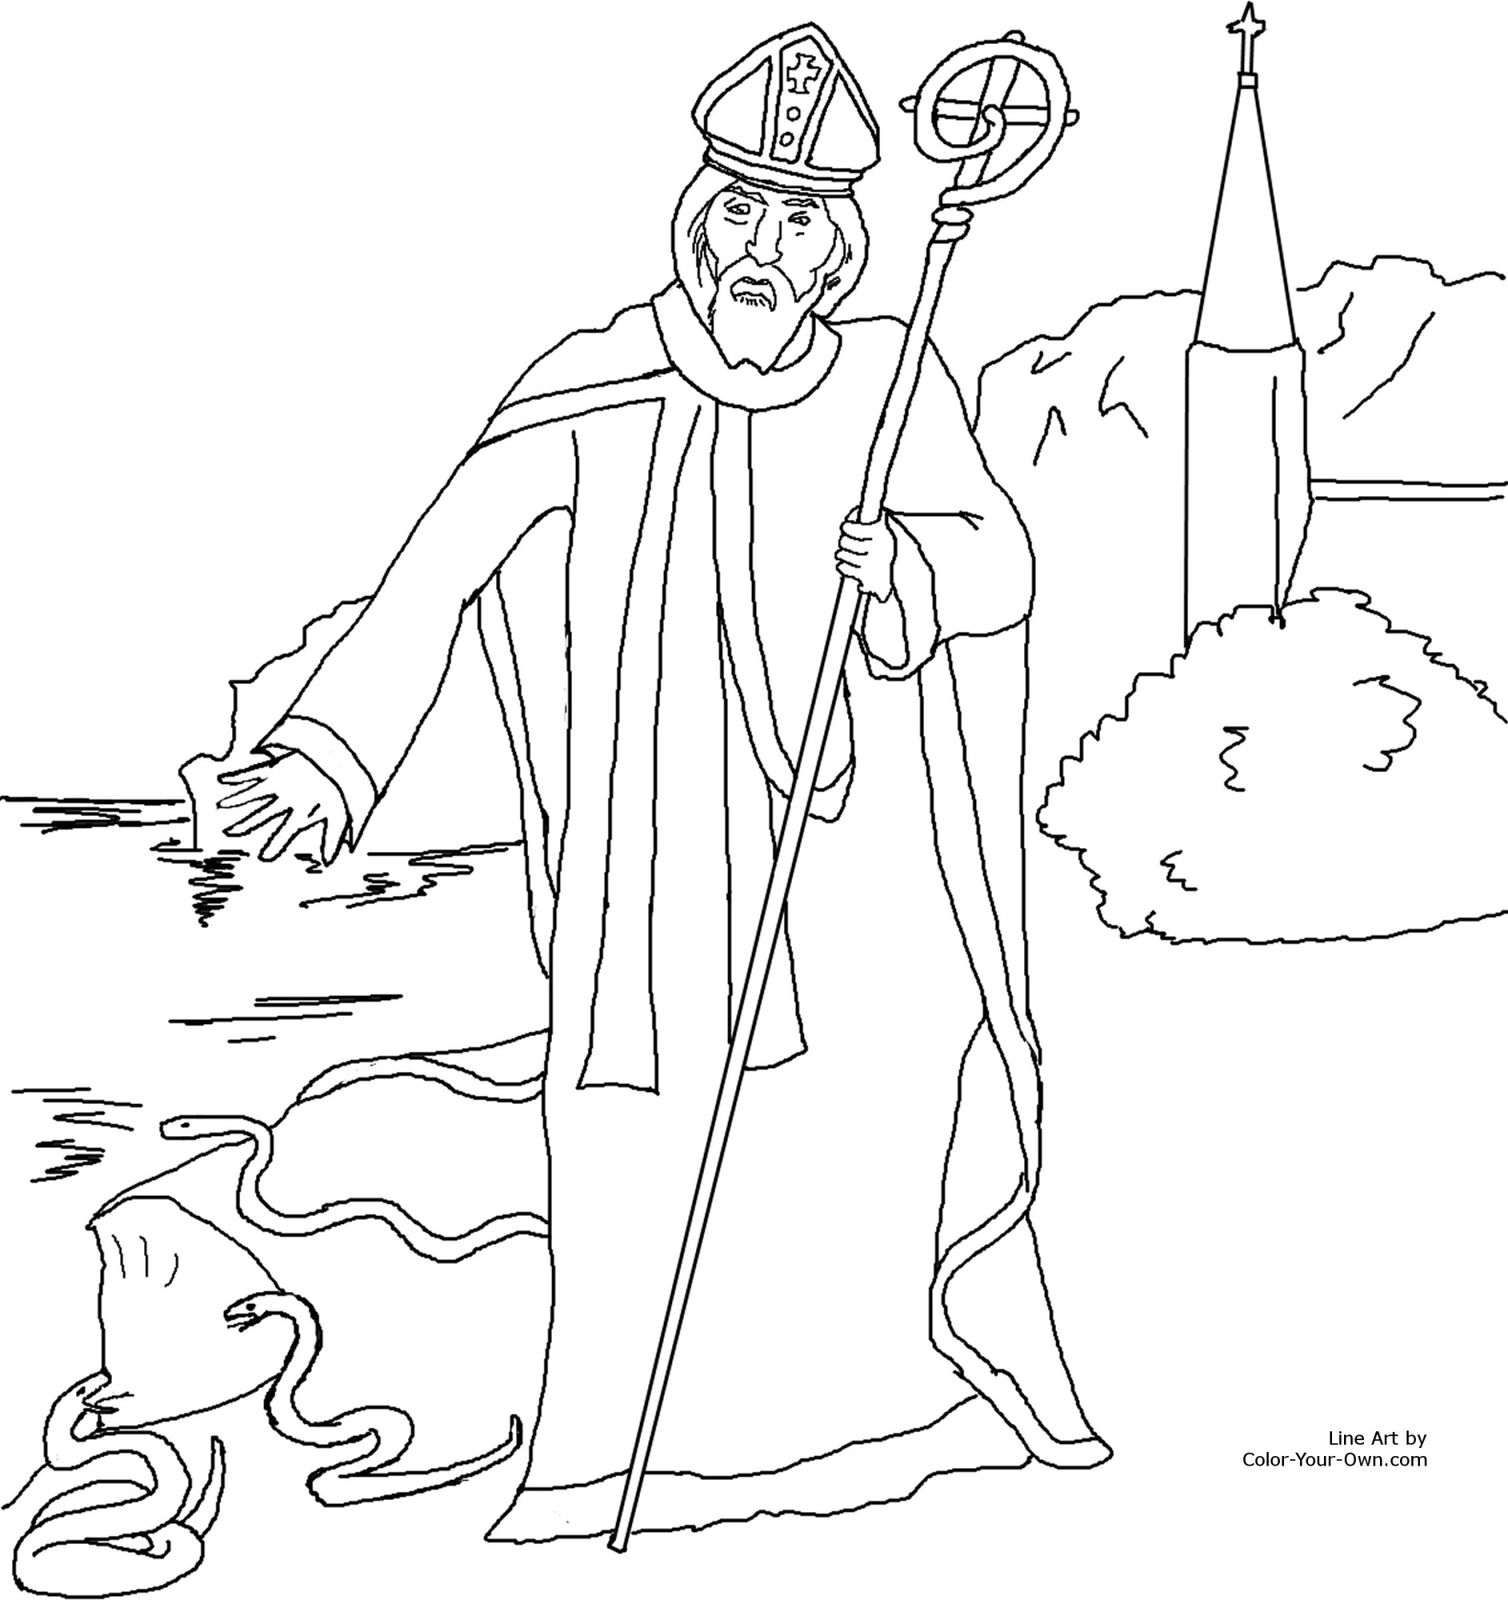 Vie coloriages de st patrick le blog de jackie for St valentine coloring pages catholic